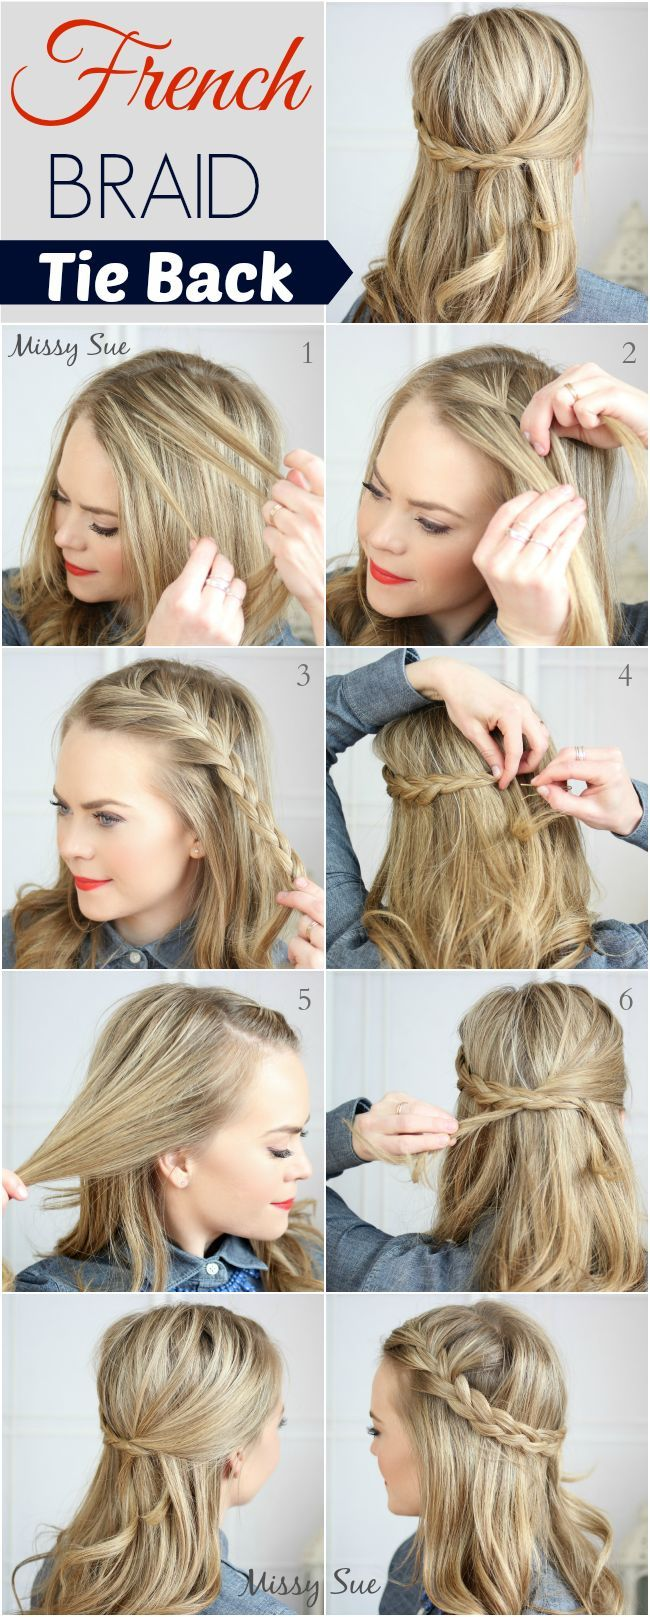 DIY French Braid Tie Back - http://1pic4u.com/2015/09/07/diy-french-braid-tie-back/